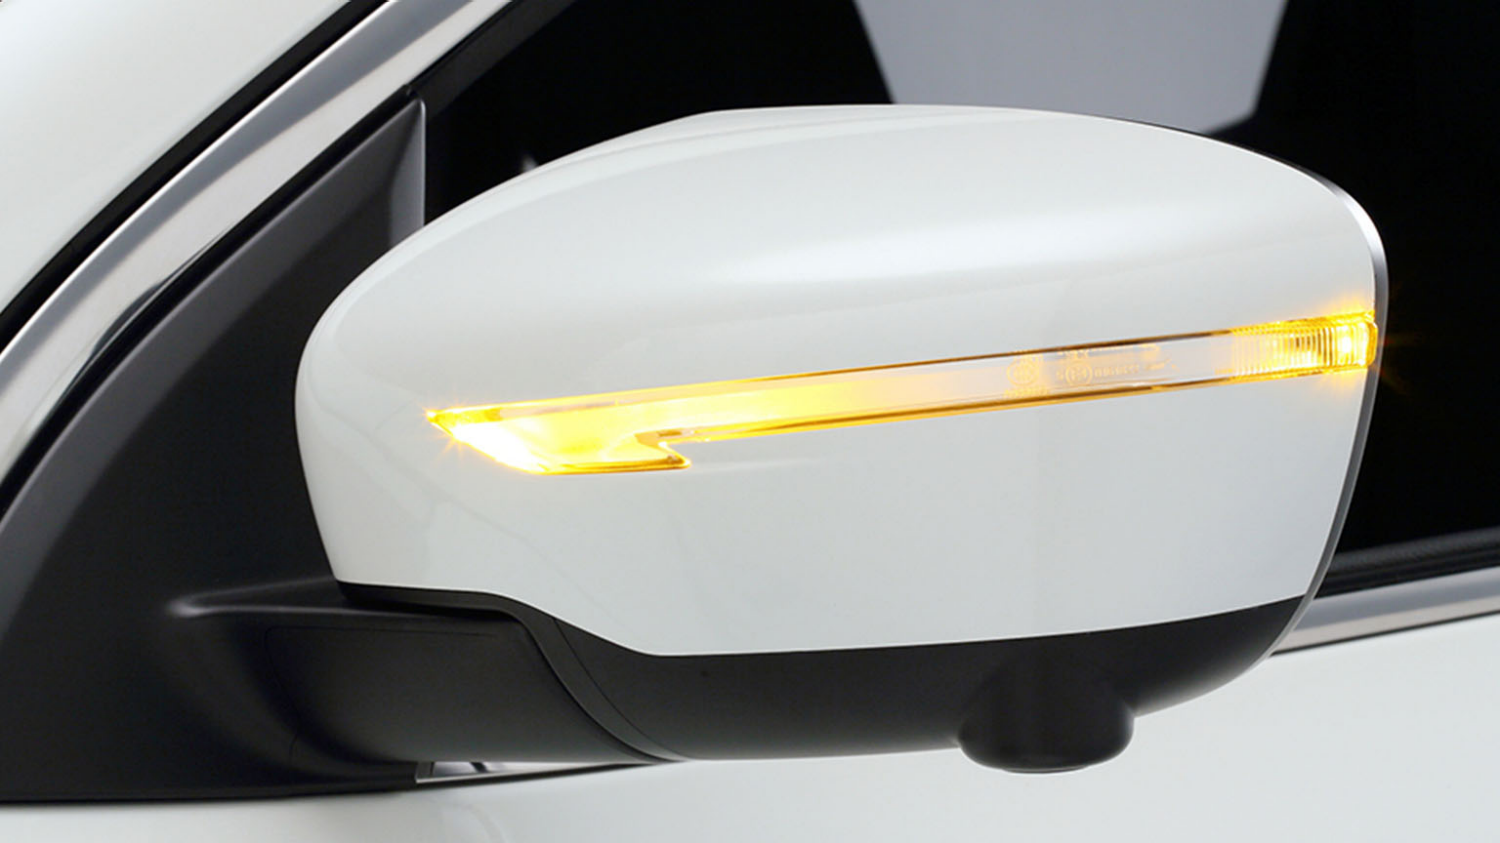 Small SUV design - Door mirror LED indicators | Nissan Qashqai